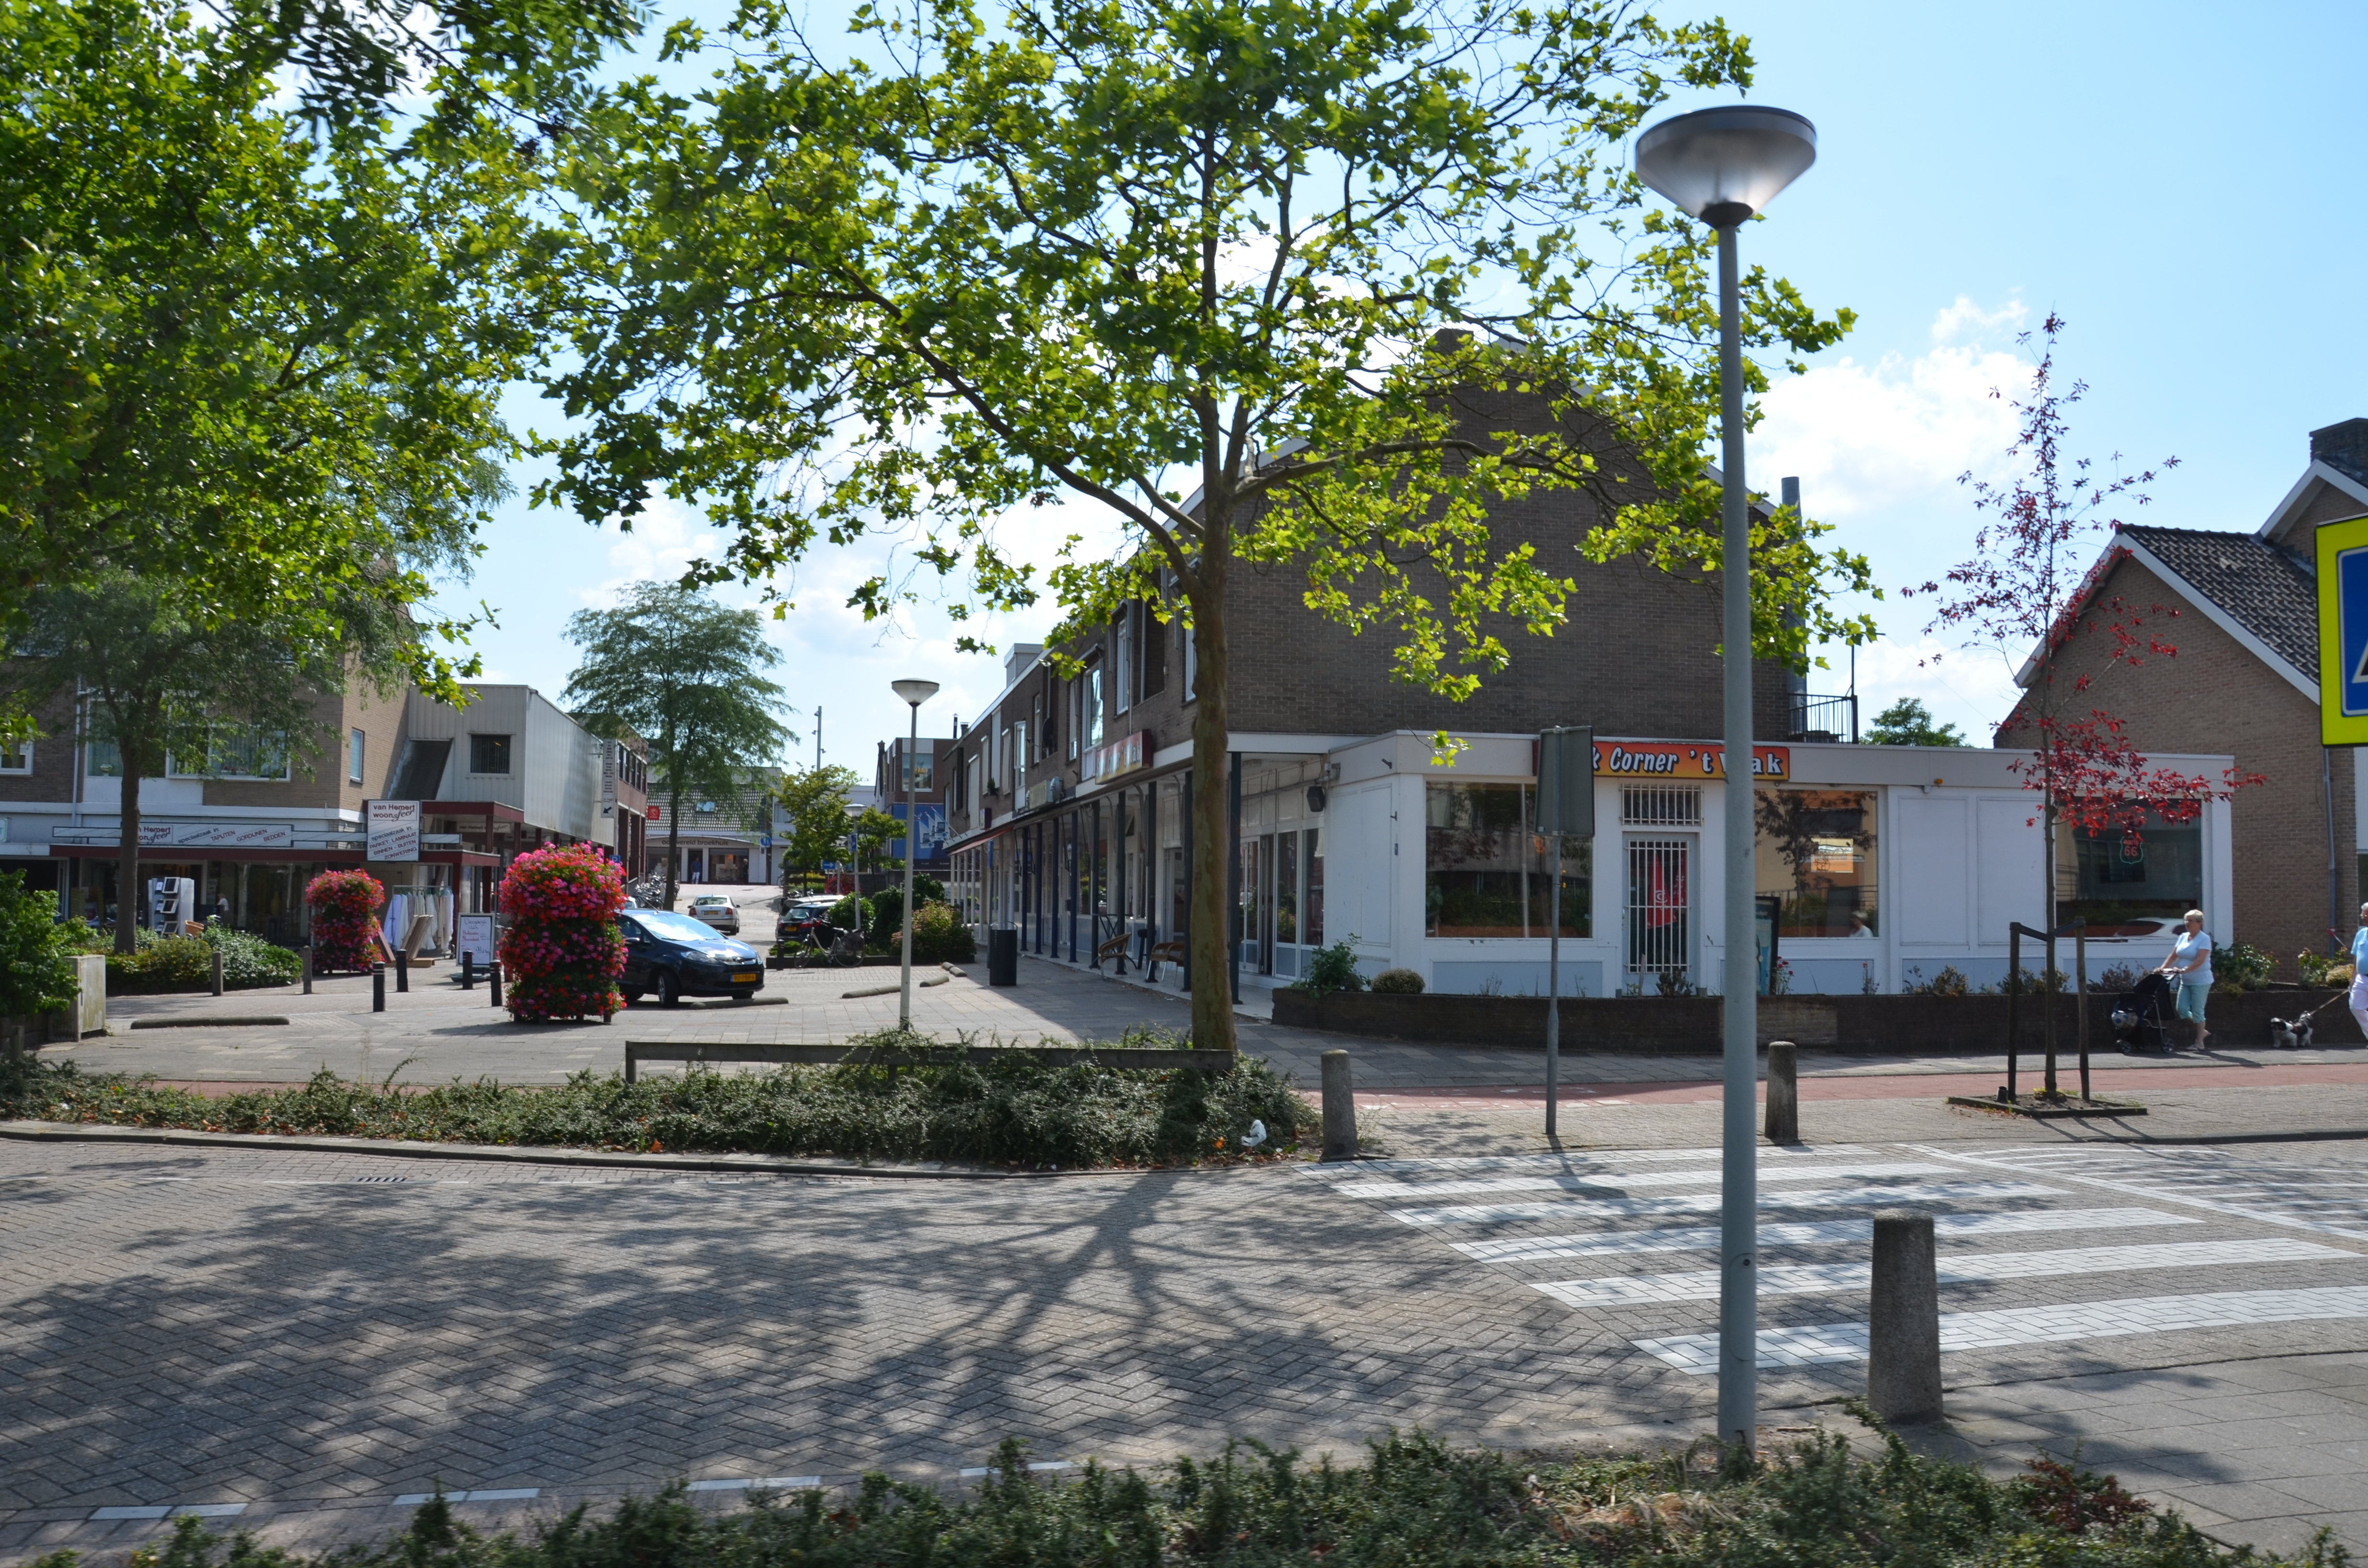 Bedden Barendrecht File Barendrecht 2015 Panoramio 14 Jpg Wikimedia Commons